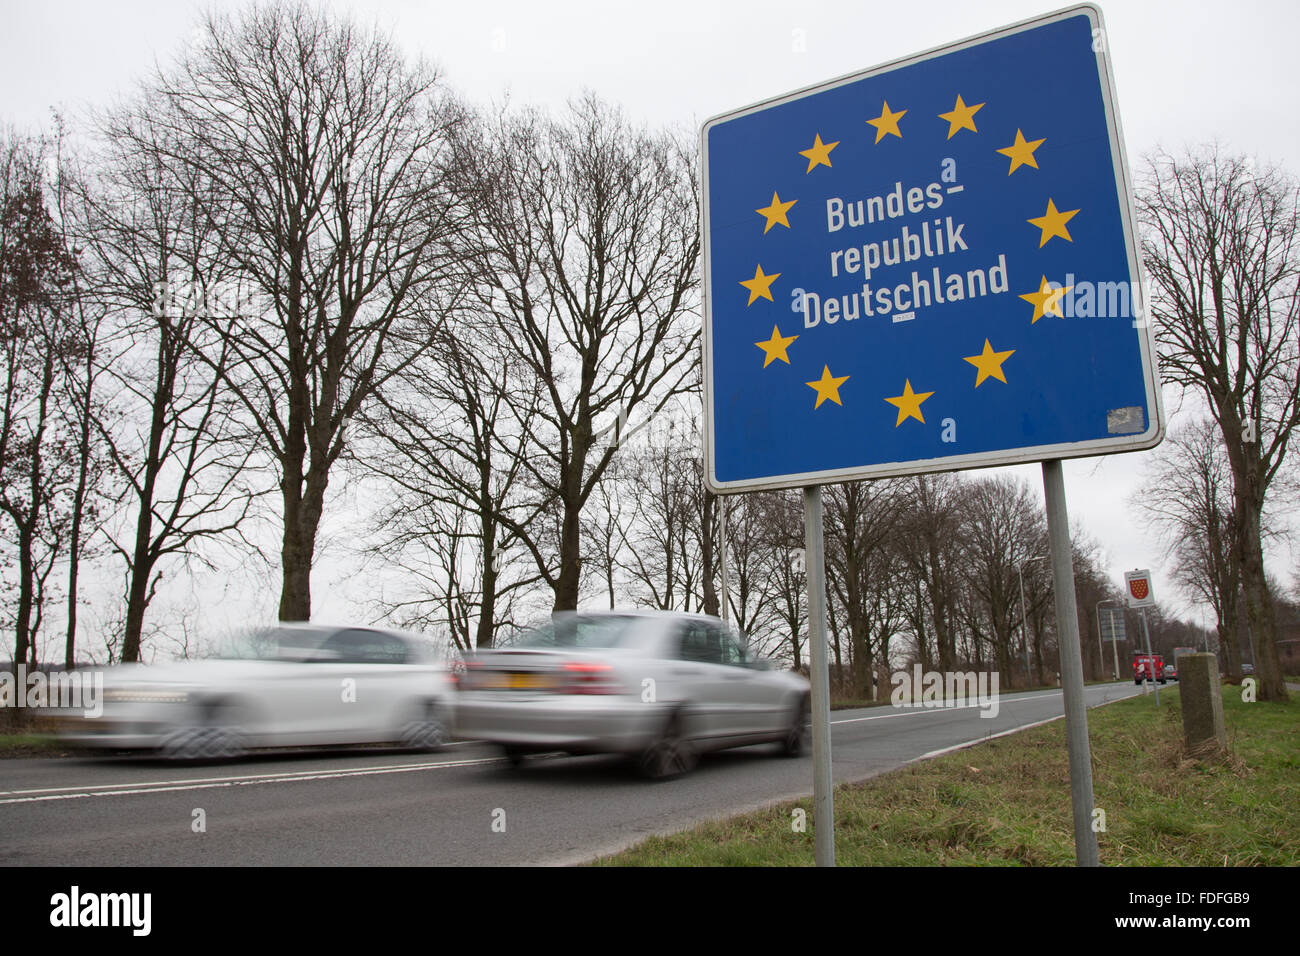 A border sign that reads 'Bundesrepublik Deutschland' (Federal Republic of Germany) is pictured at the border - Stock Image